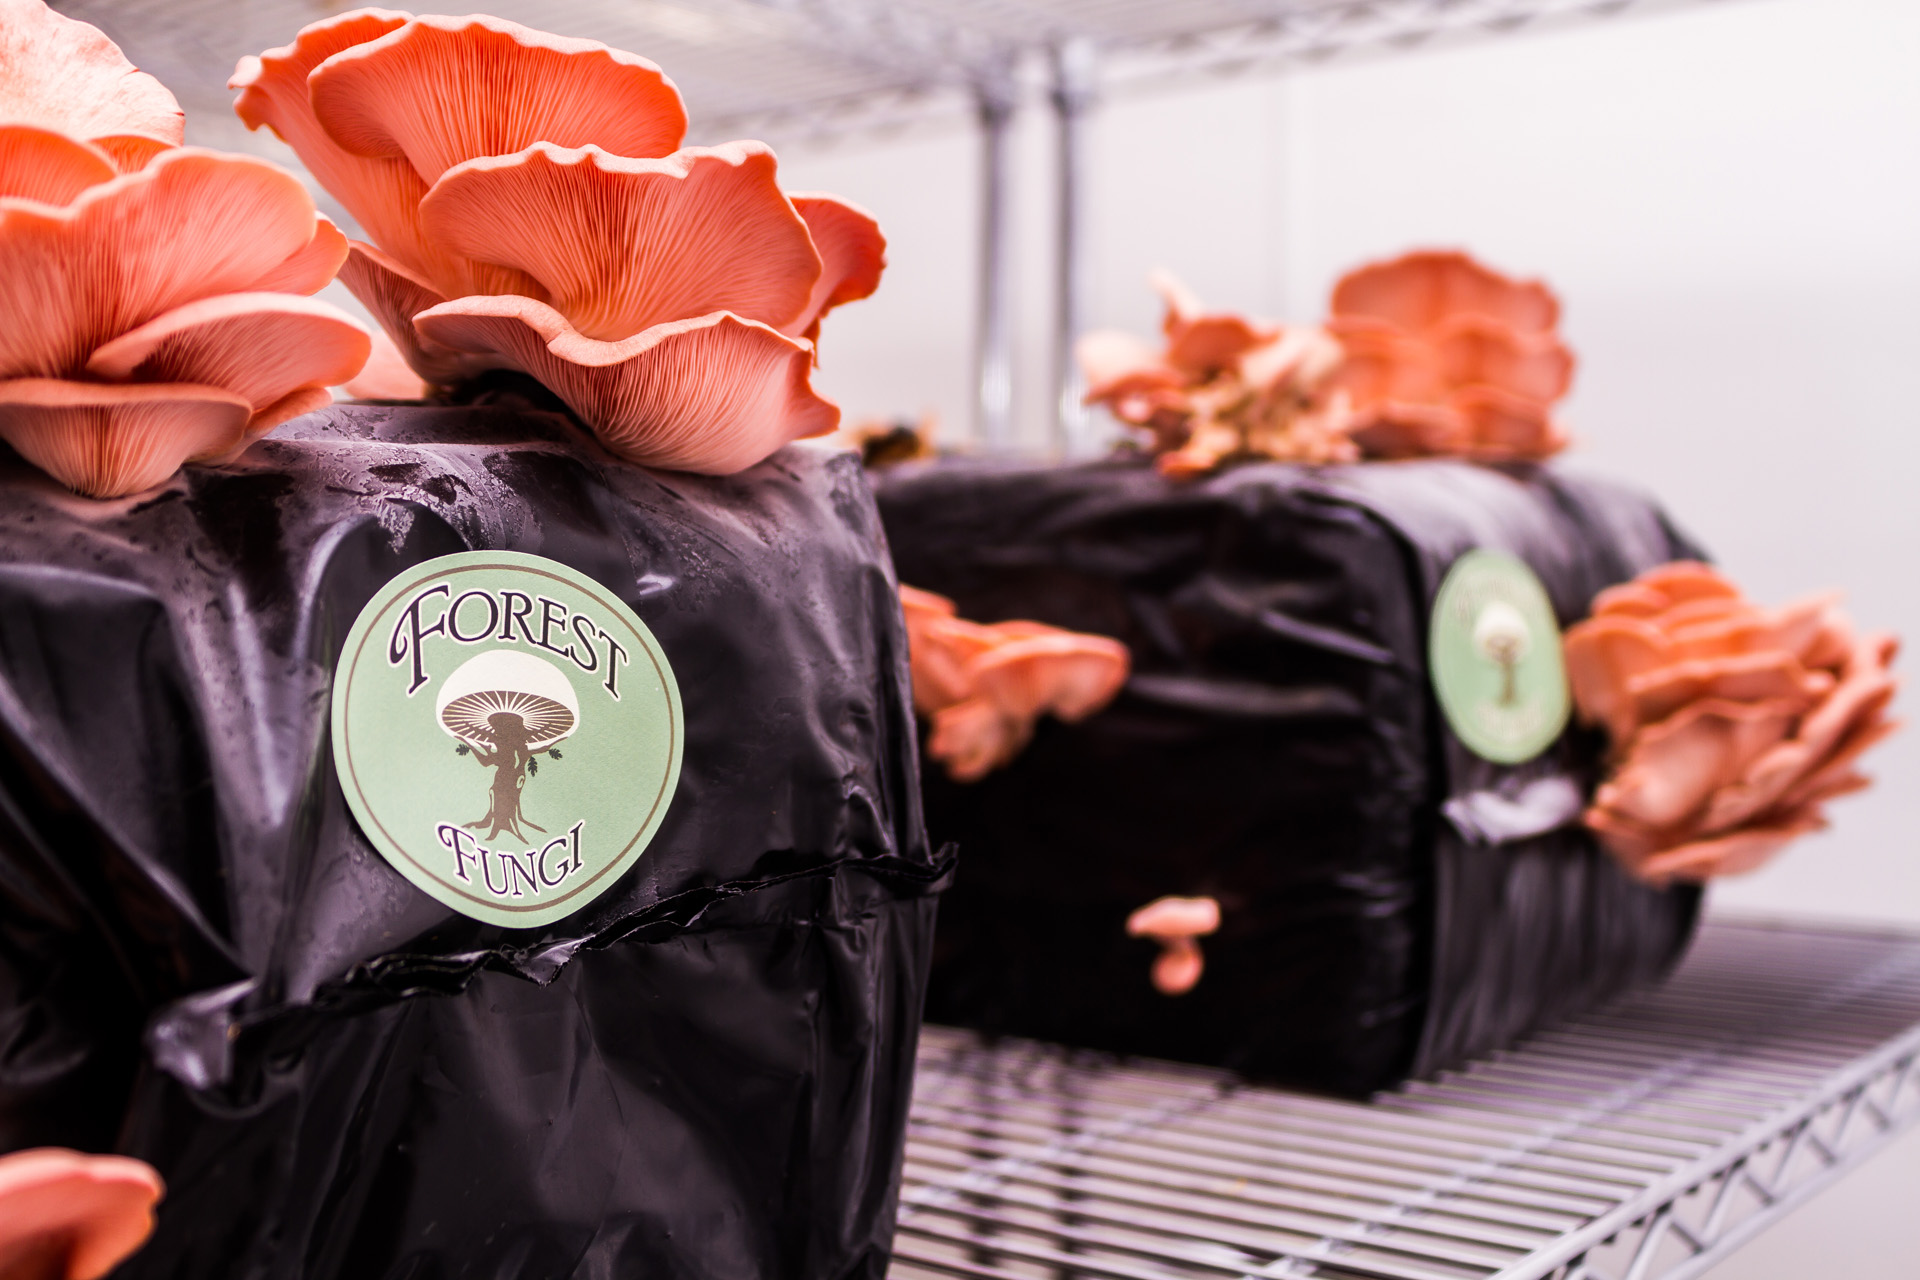 Forest Fungi - Growing Pink Oyster Mushroom